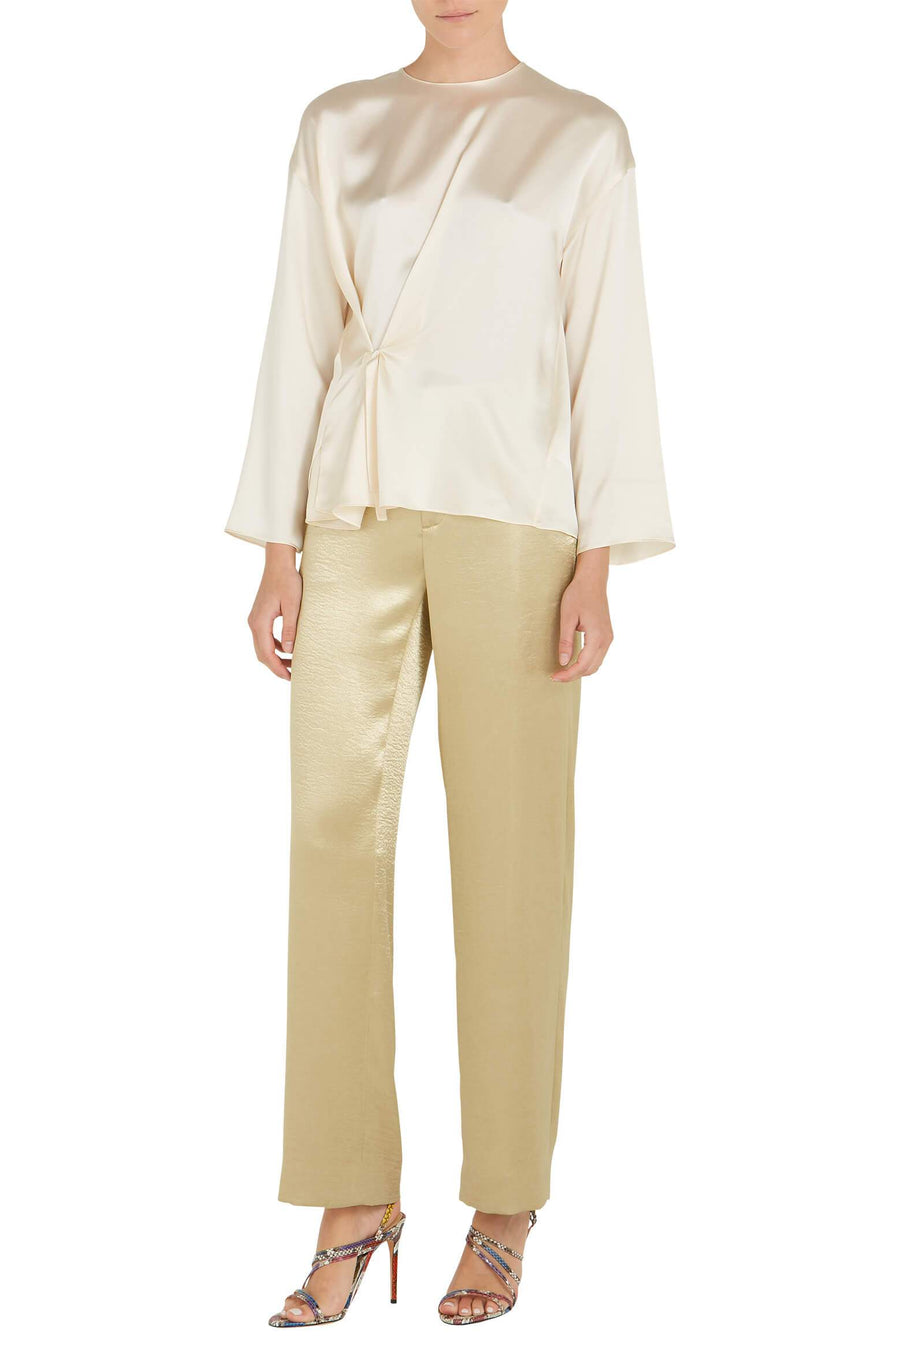 VINCE. Knot Front Blouse in Chiffon from The New Trend